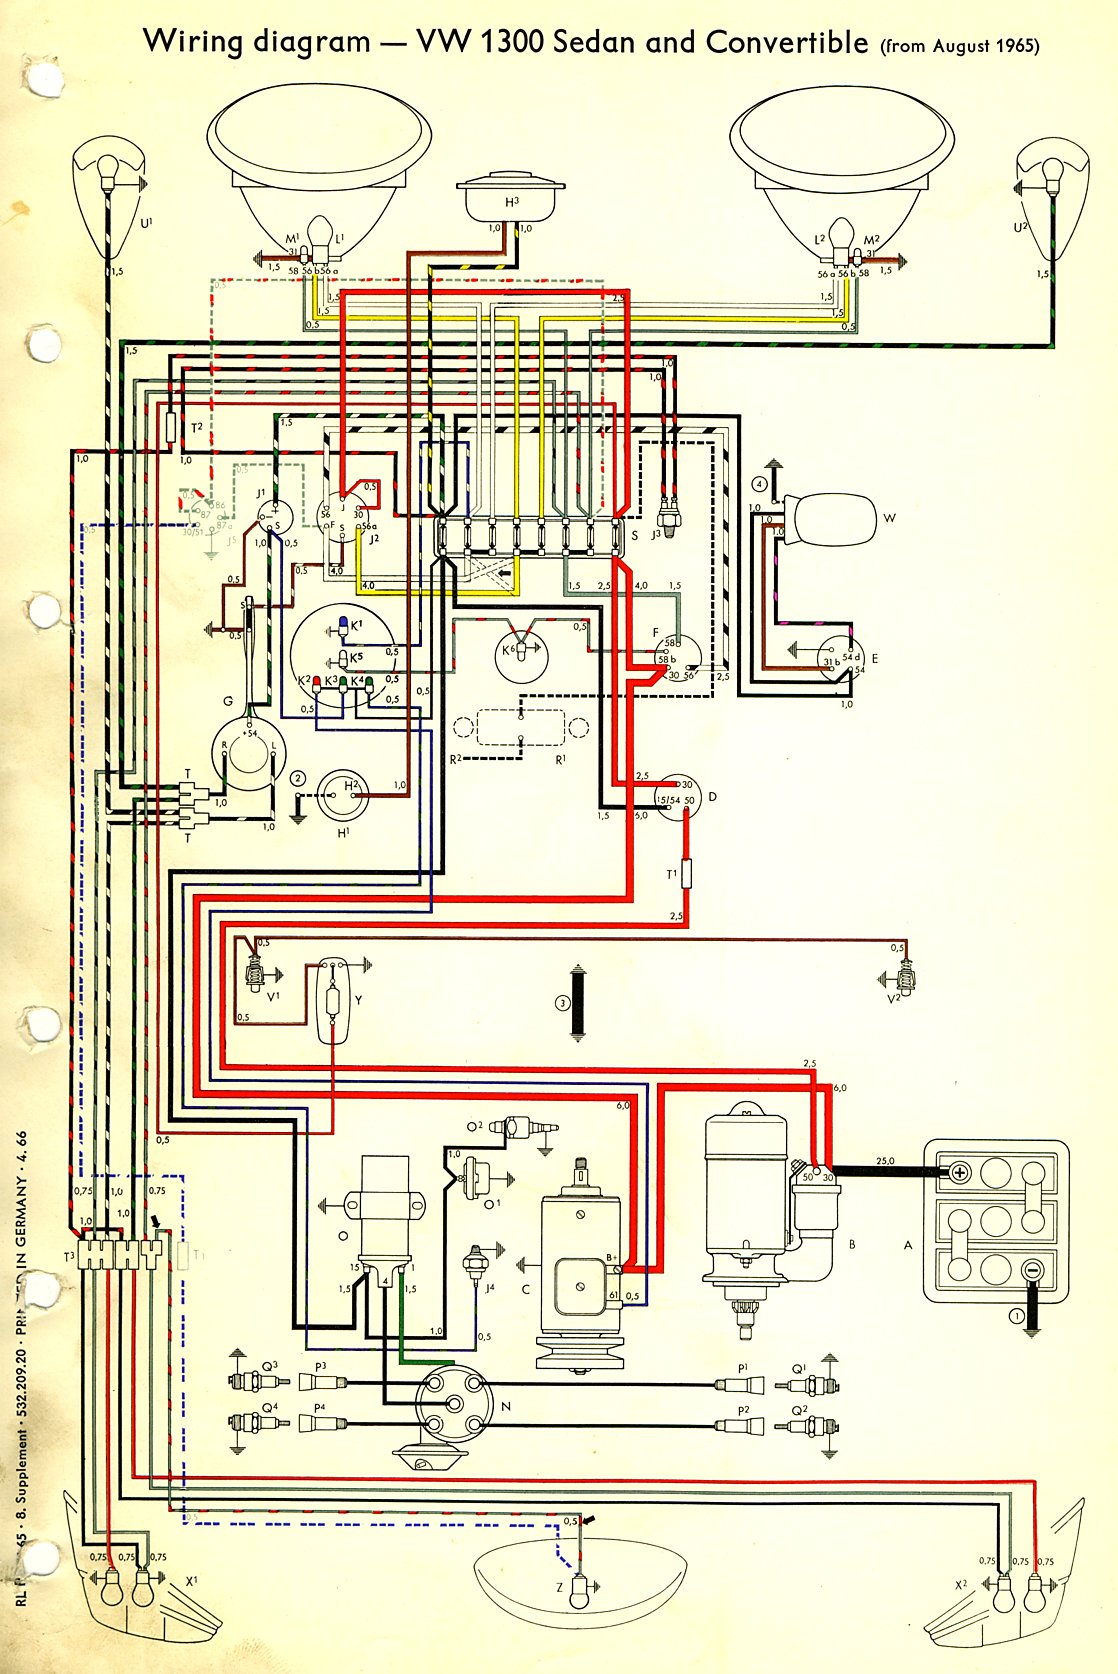 66 Corvette Wiring Schematic Archive Of Automotive Diagram 1966 Pdf 74 Just Data Rh Ag Skiphire Co Uk